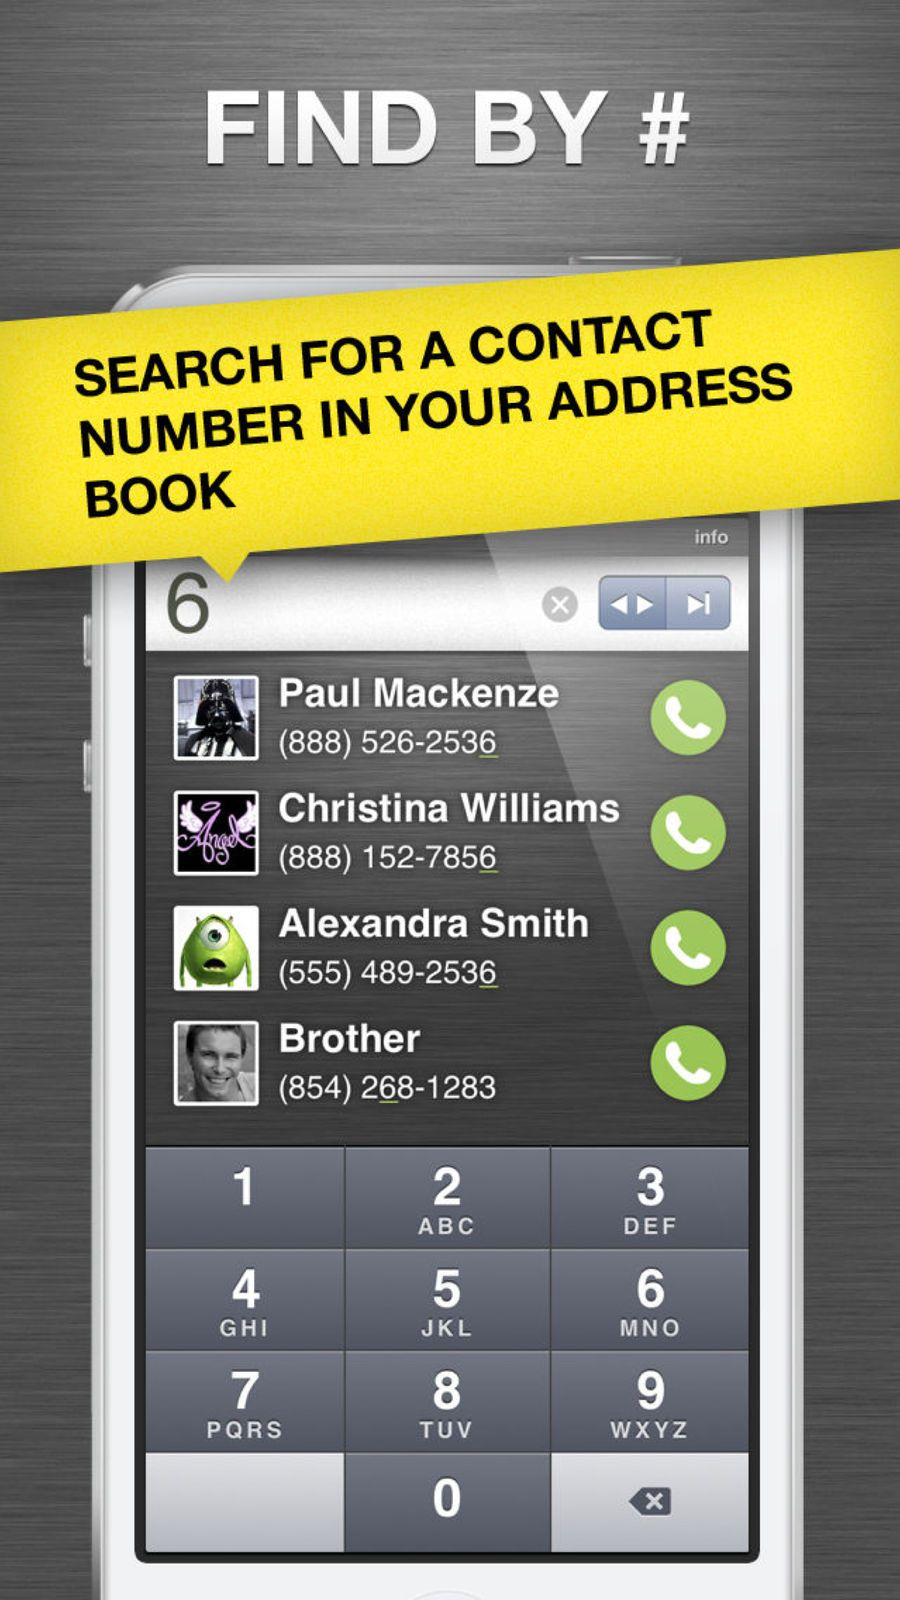 Find by phone number free (who is it?) Utilities